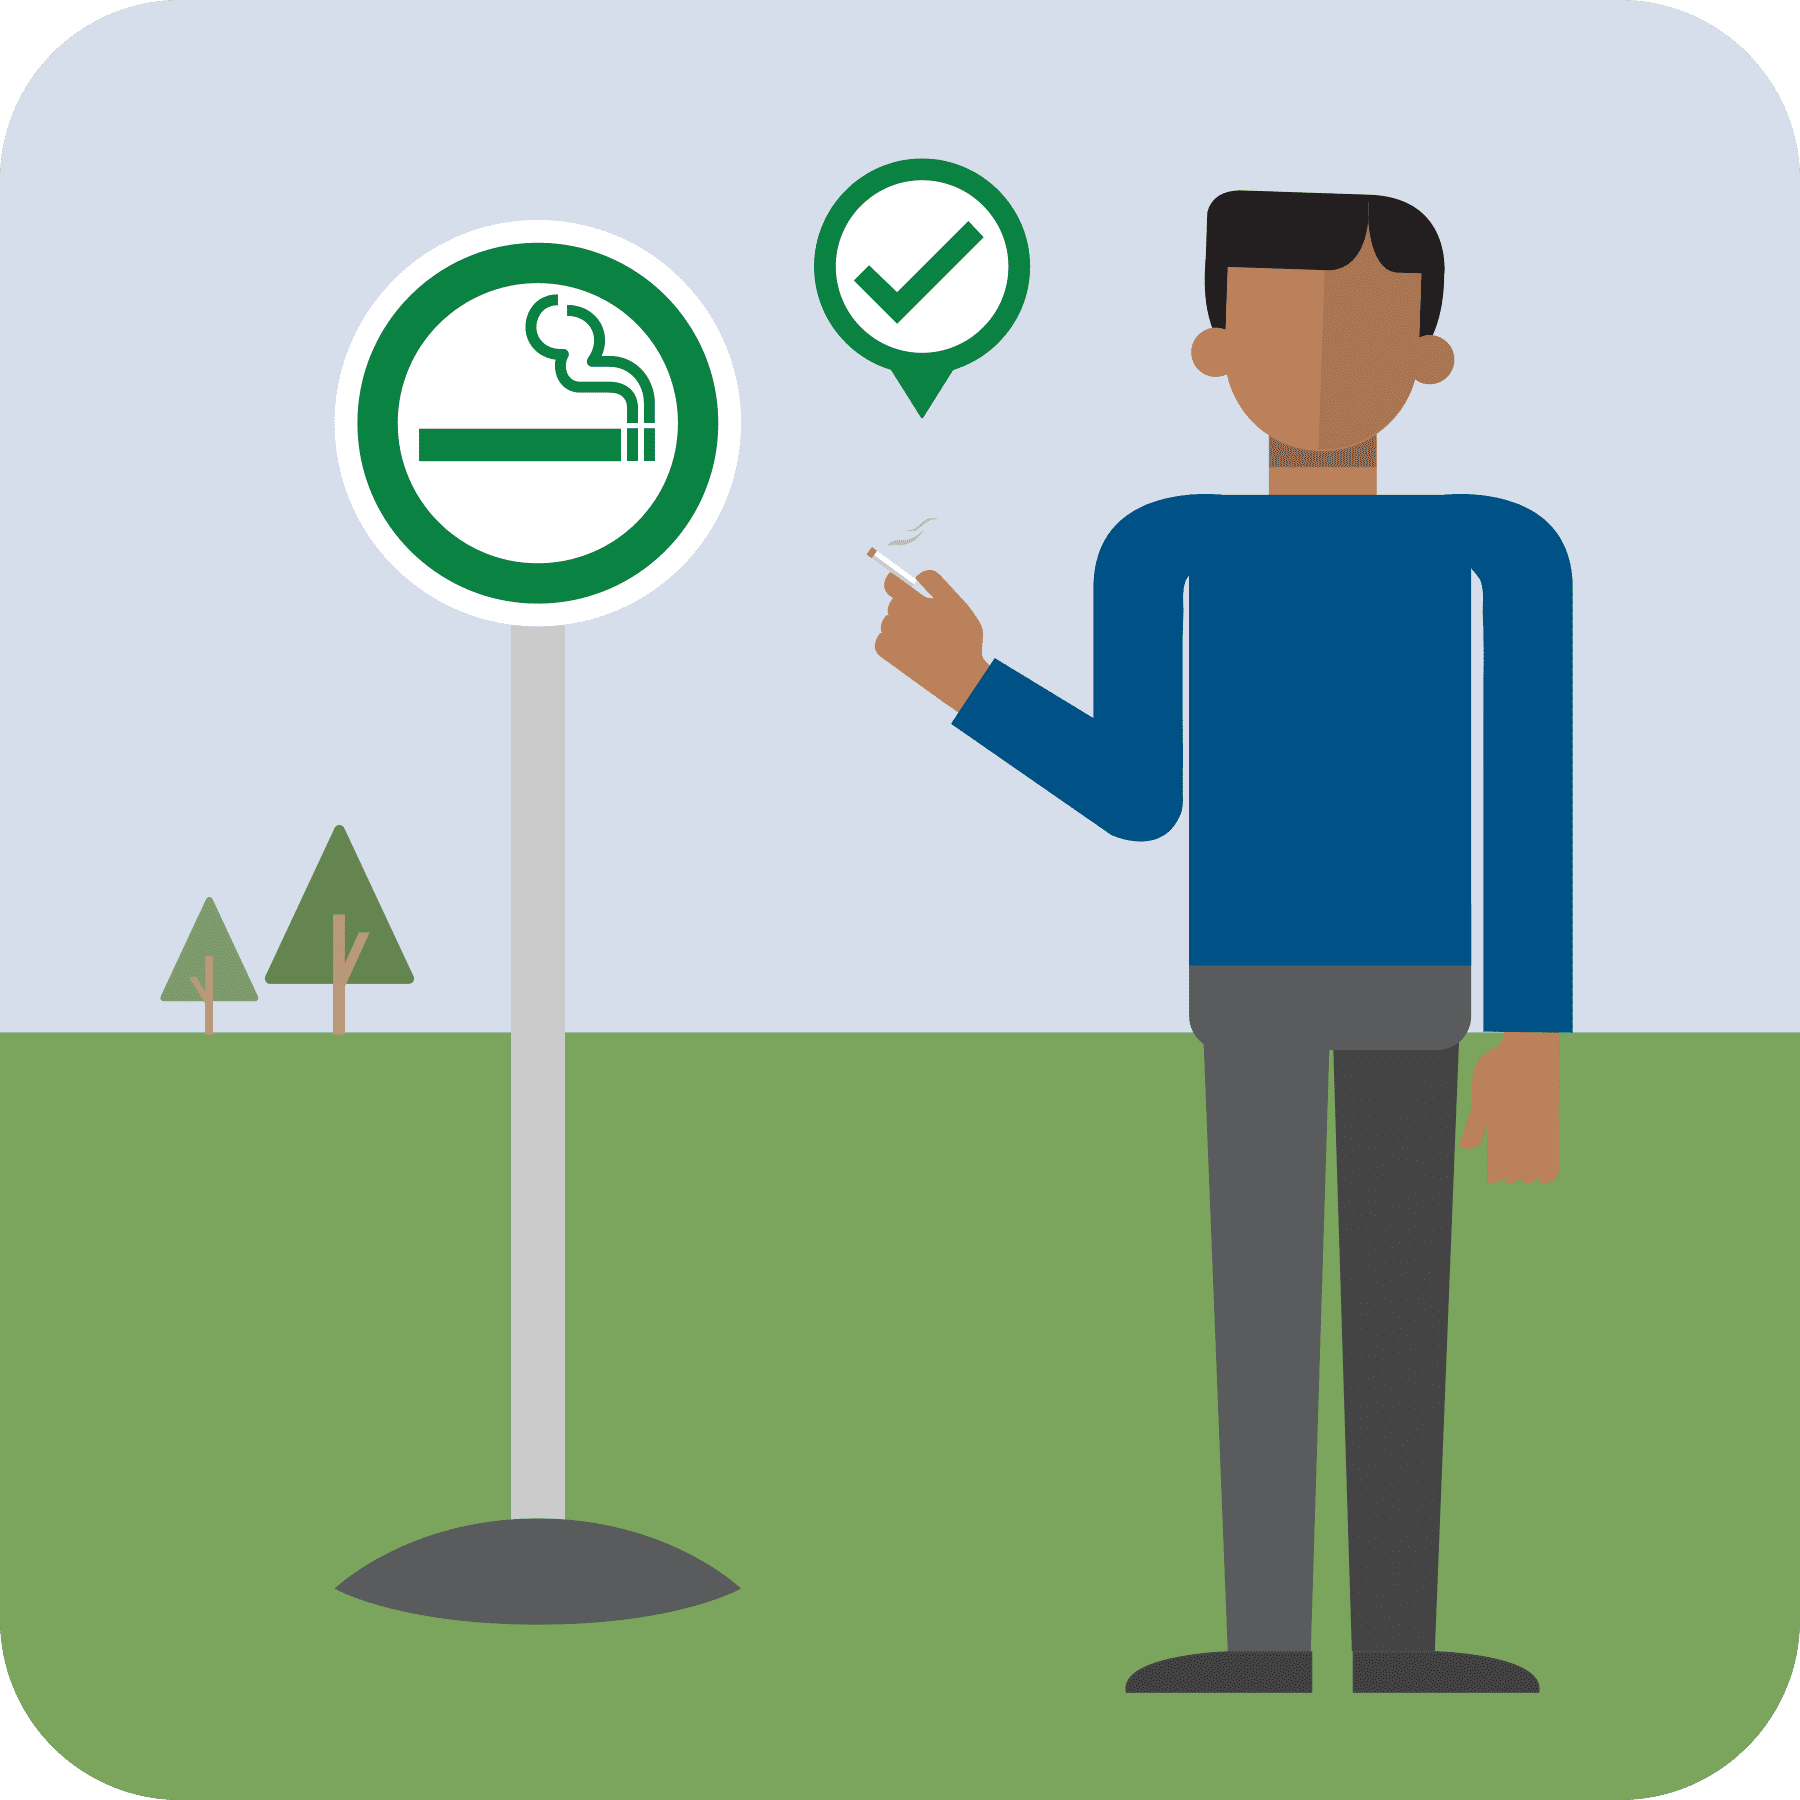 The no smoking sign turns into a green smoking sign. Man with cigarette appears with a green check.